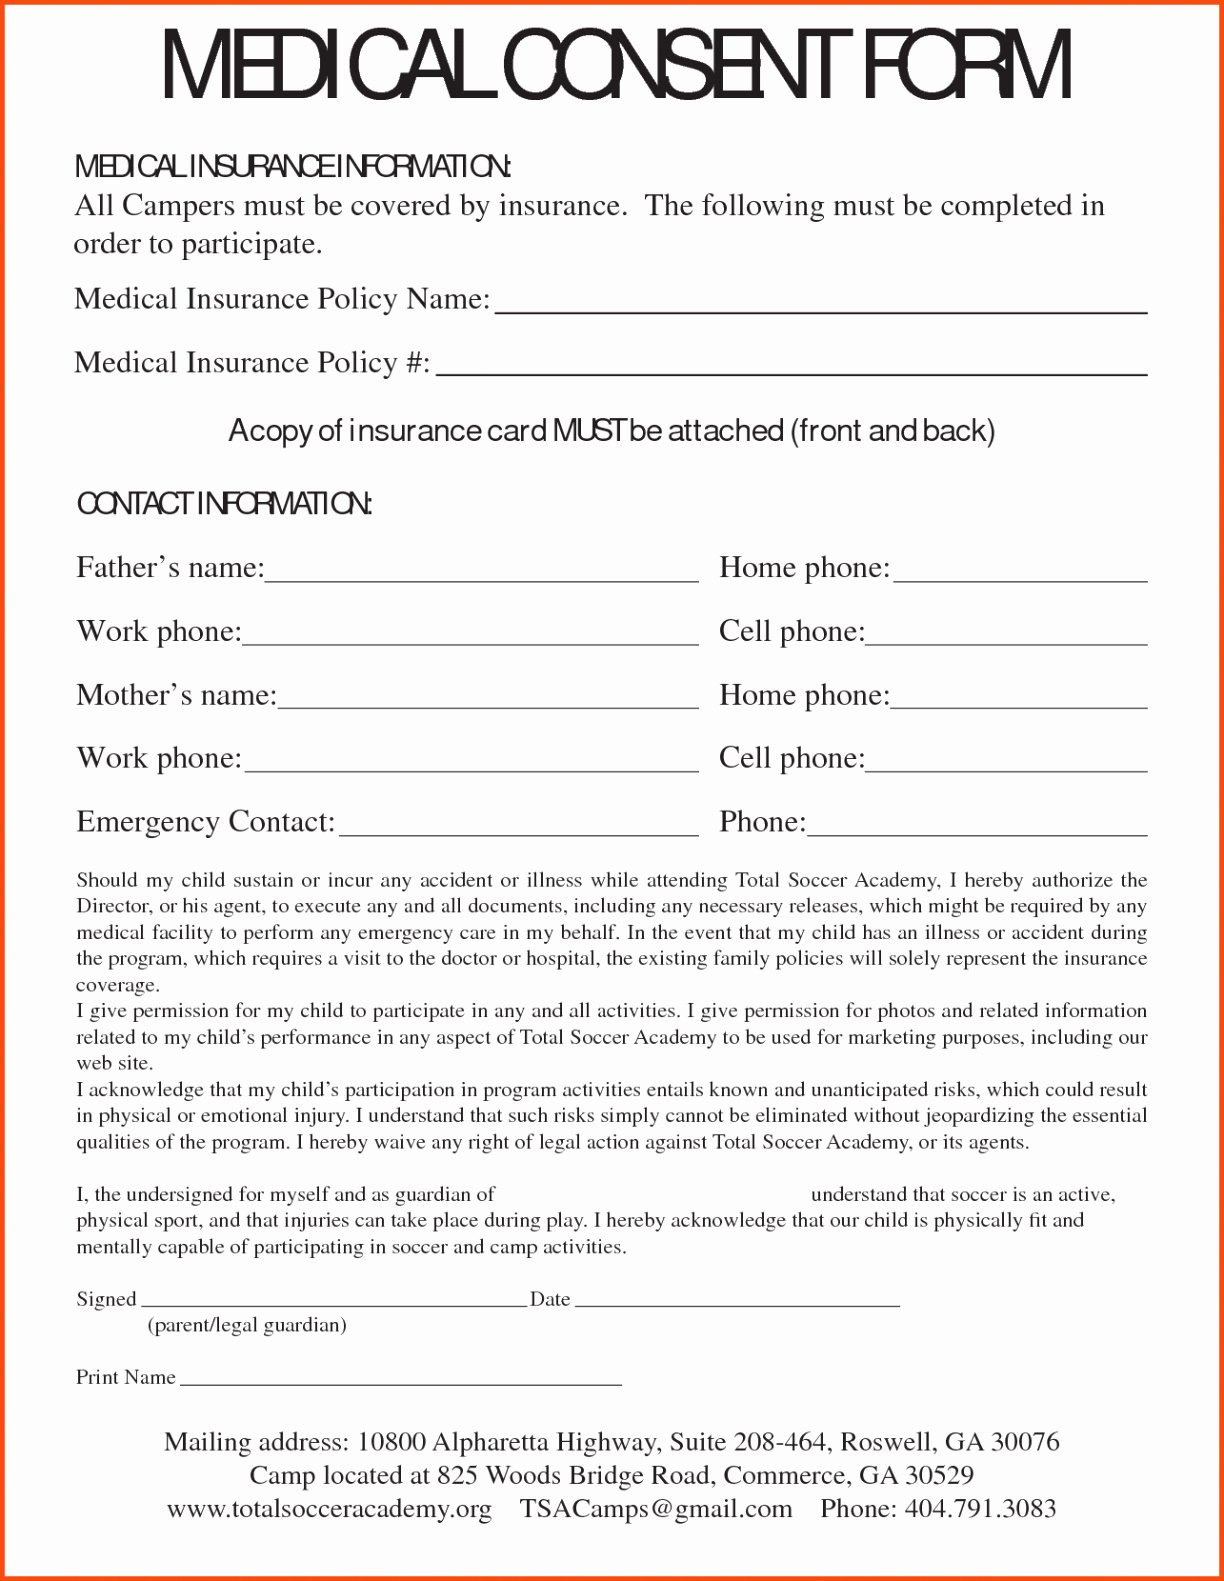 Medical Consent form Template Lovely Medical form Templates Free Resume Referral Template Word